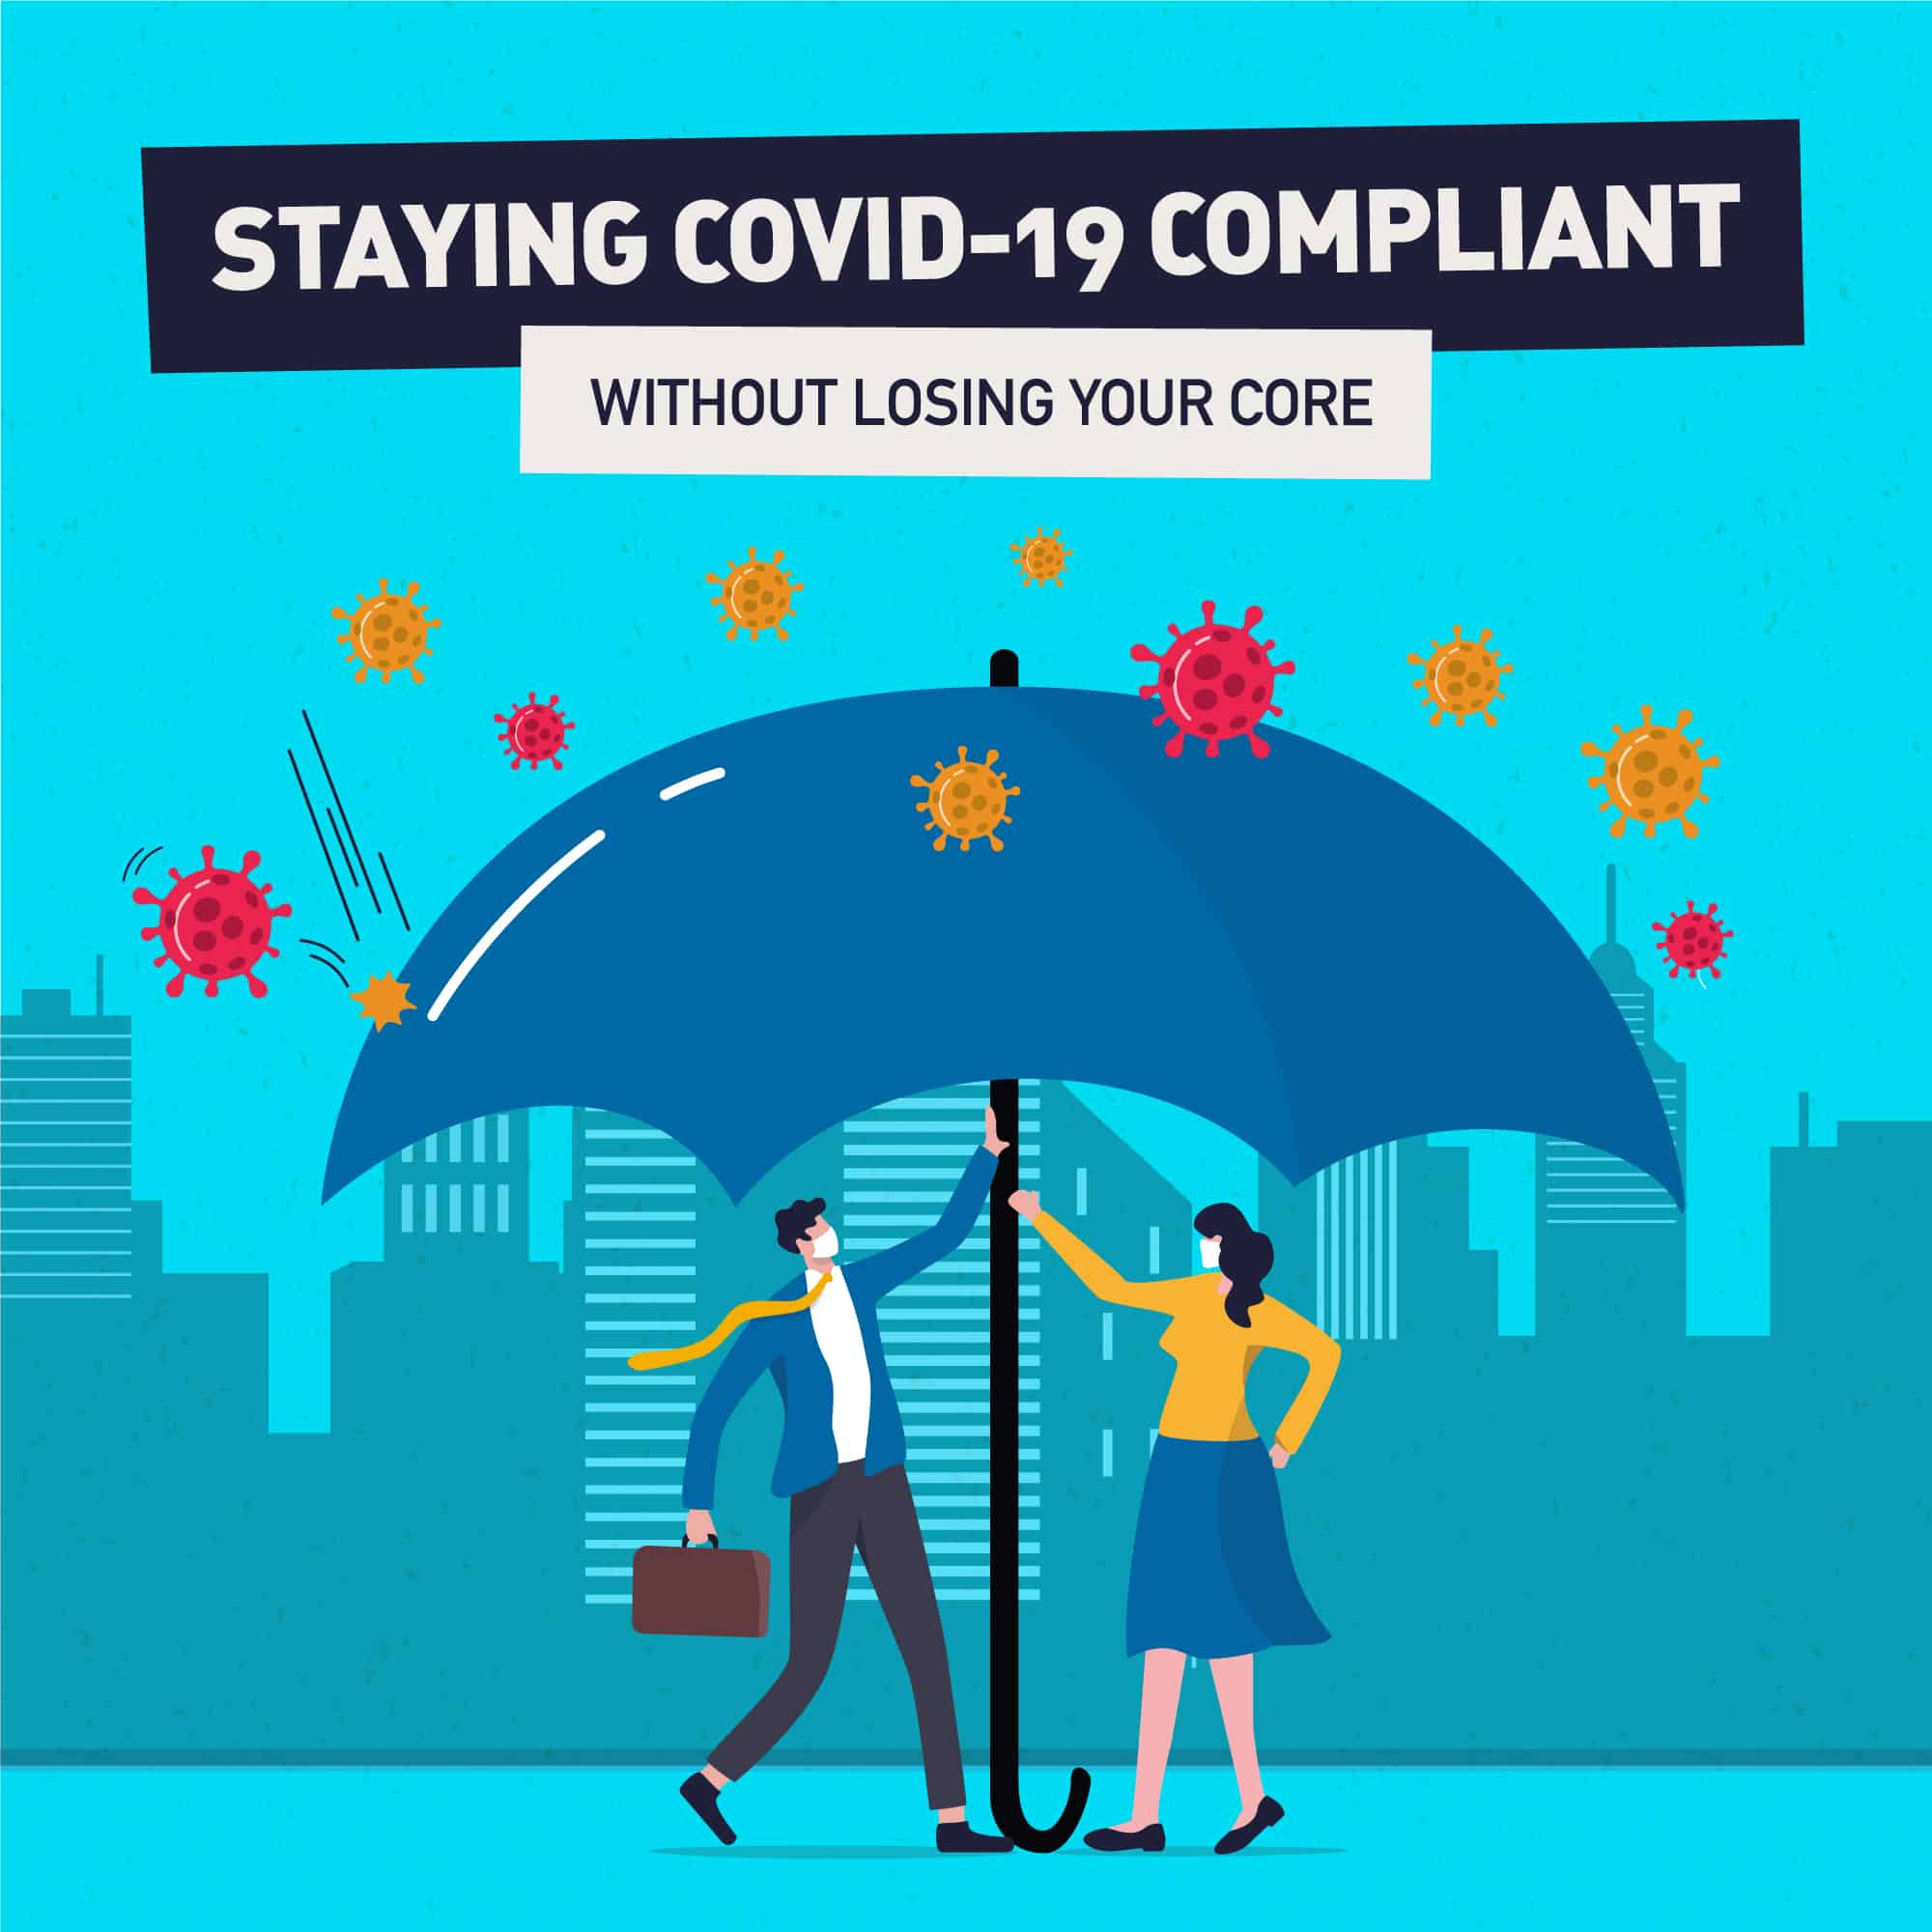 Staying Covid-19 compliant without losing your core